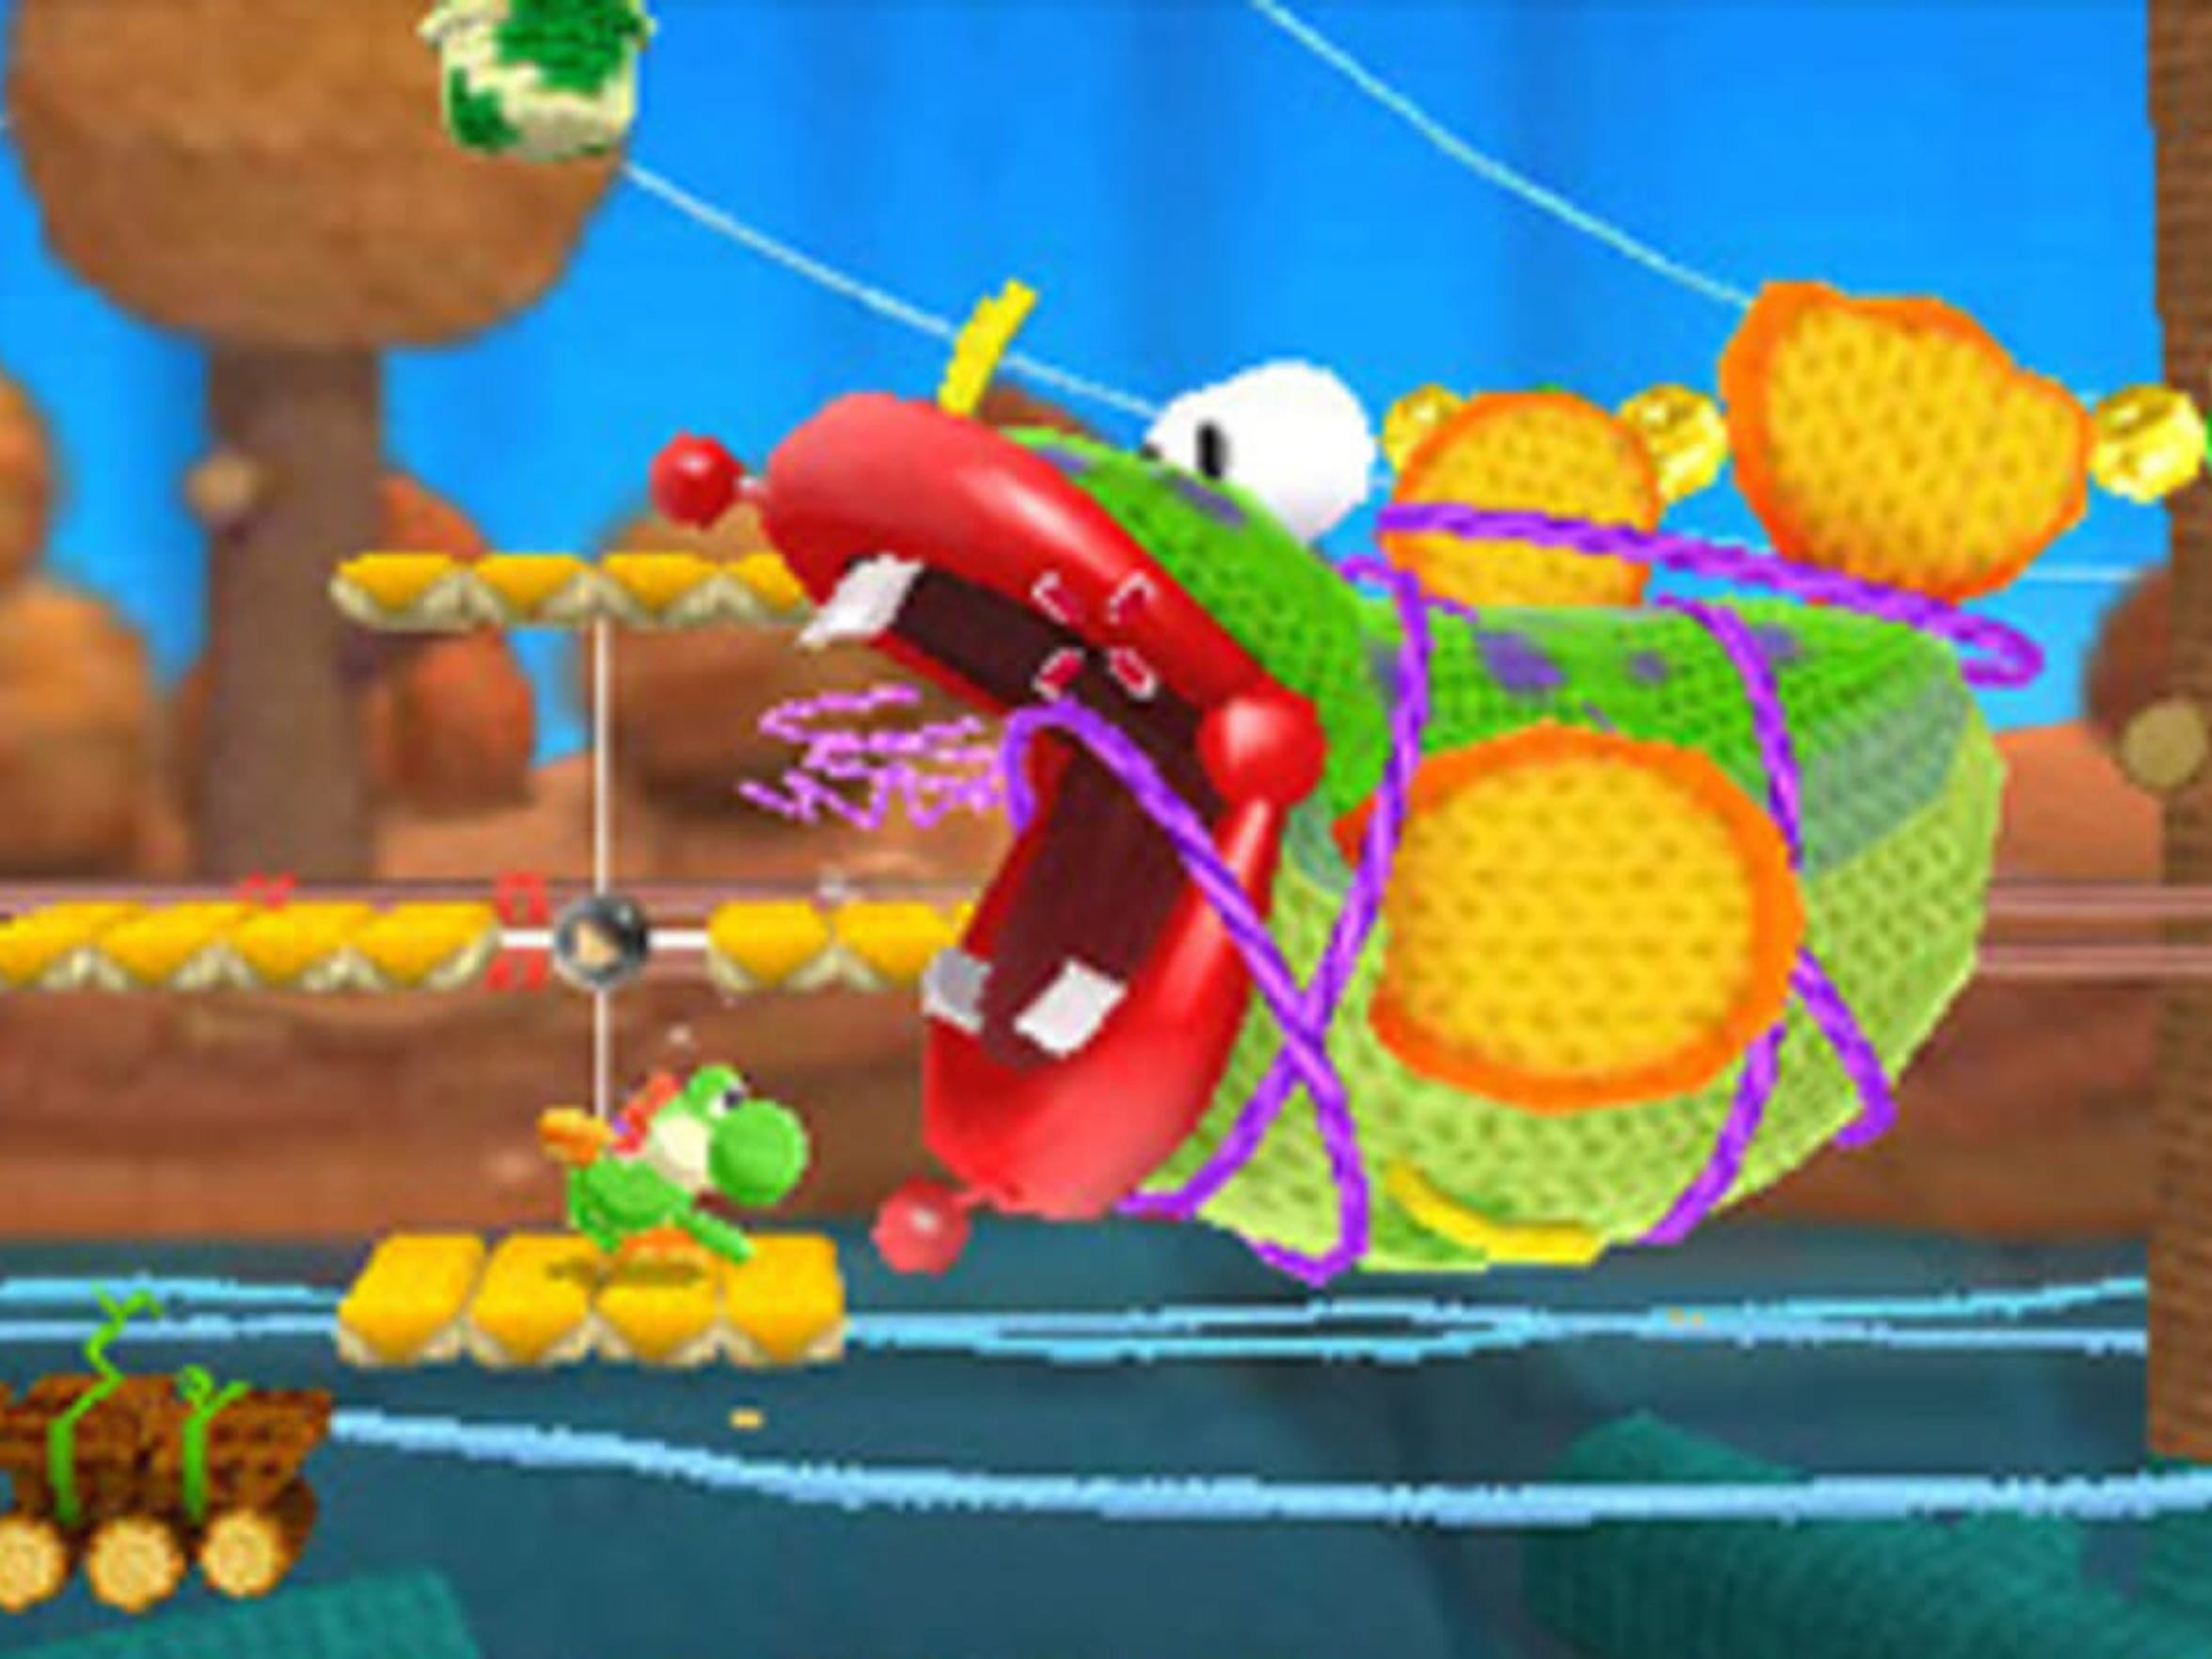 Poochy and Yoshi's Woolly World brings the yarn-style